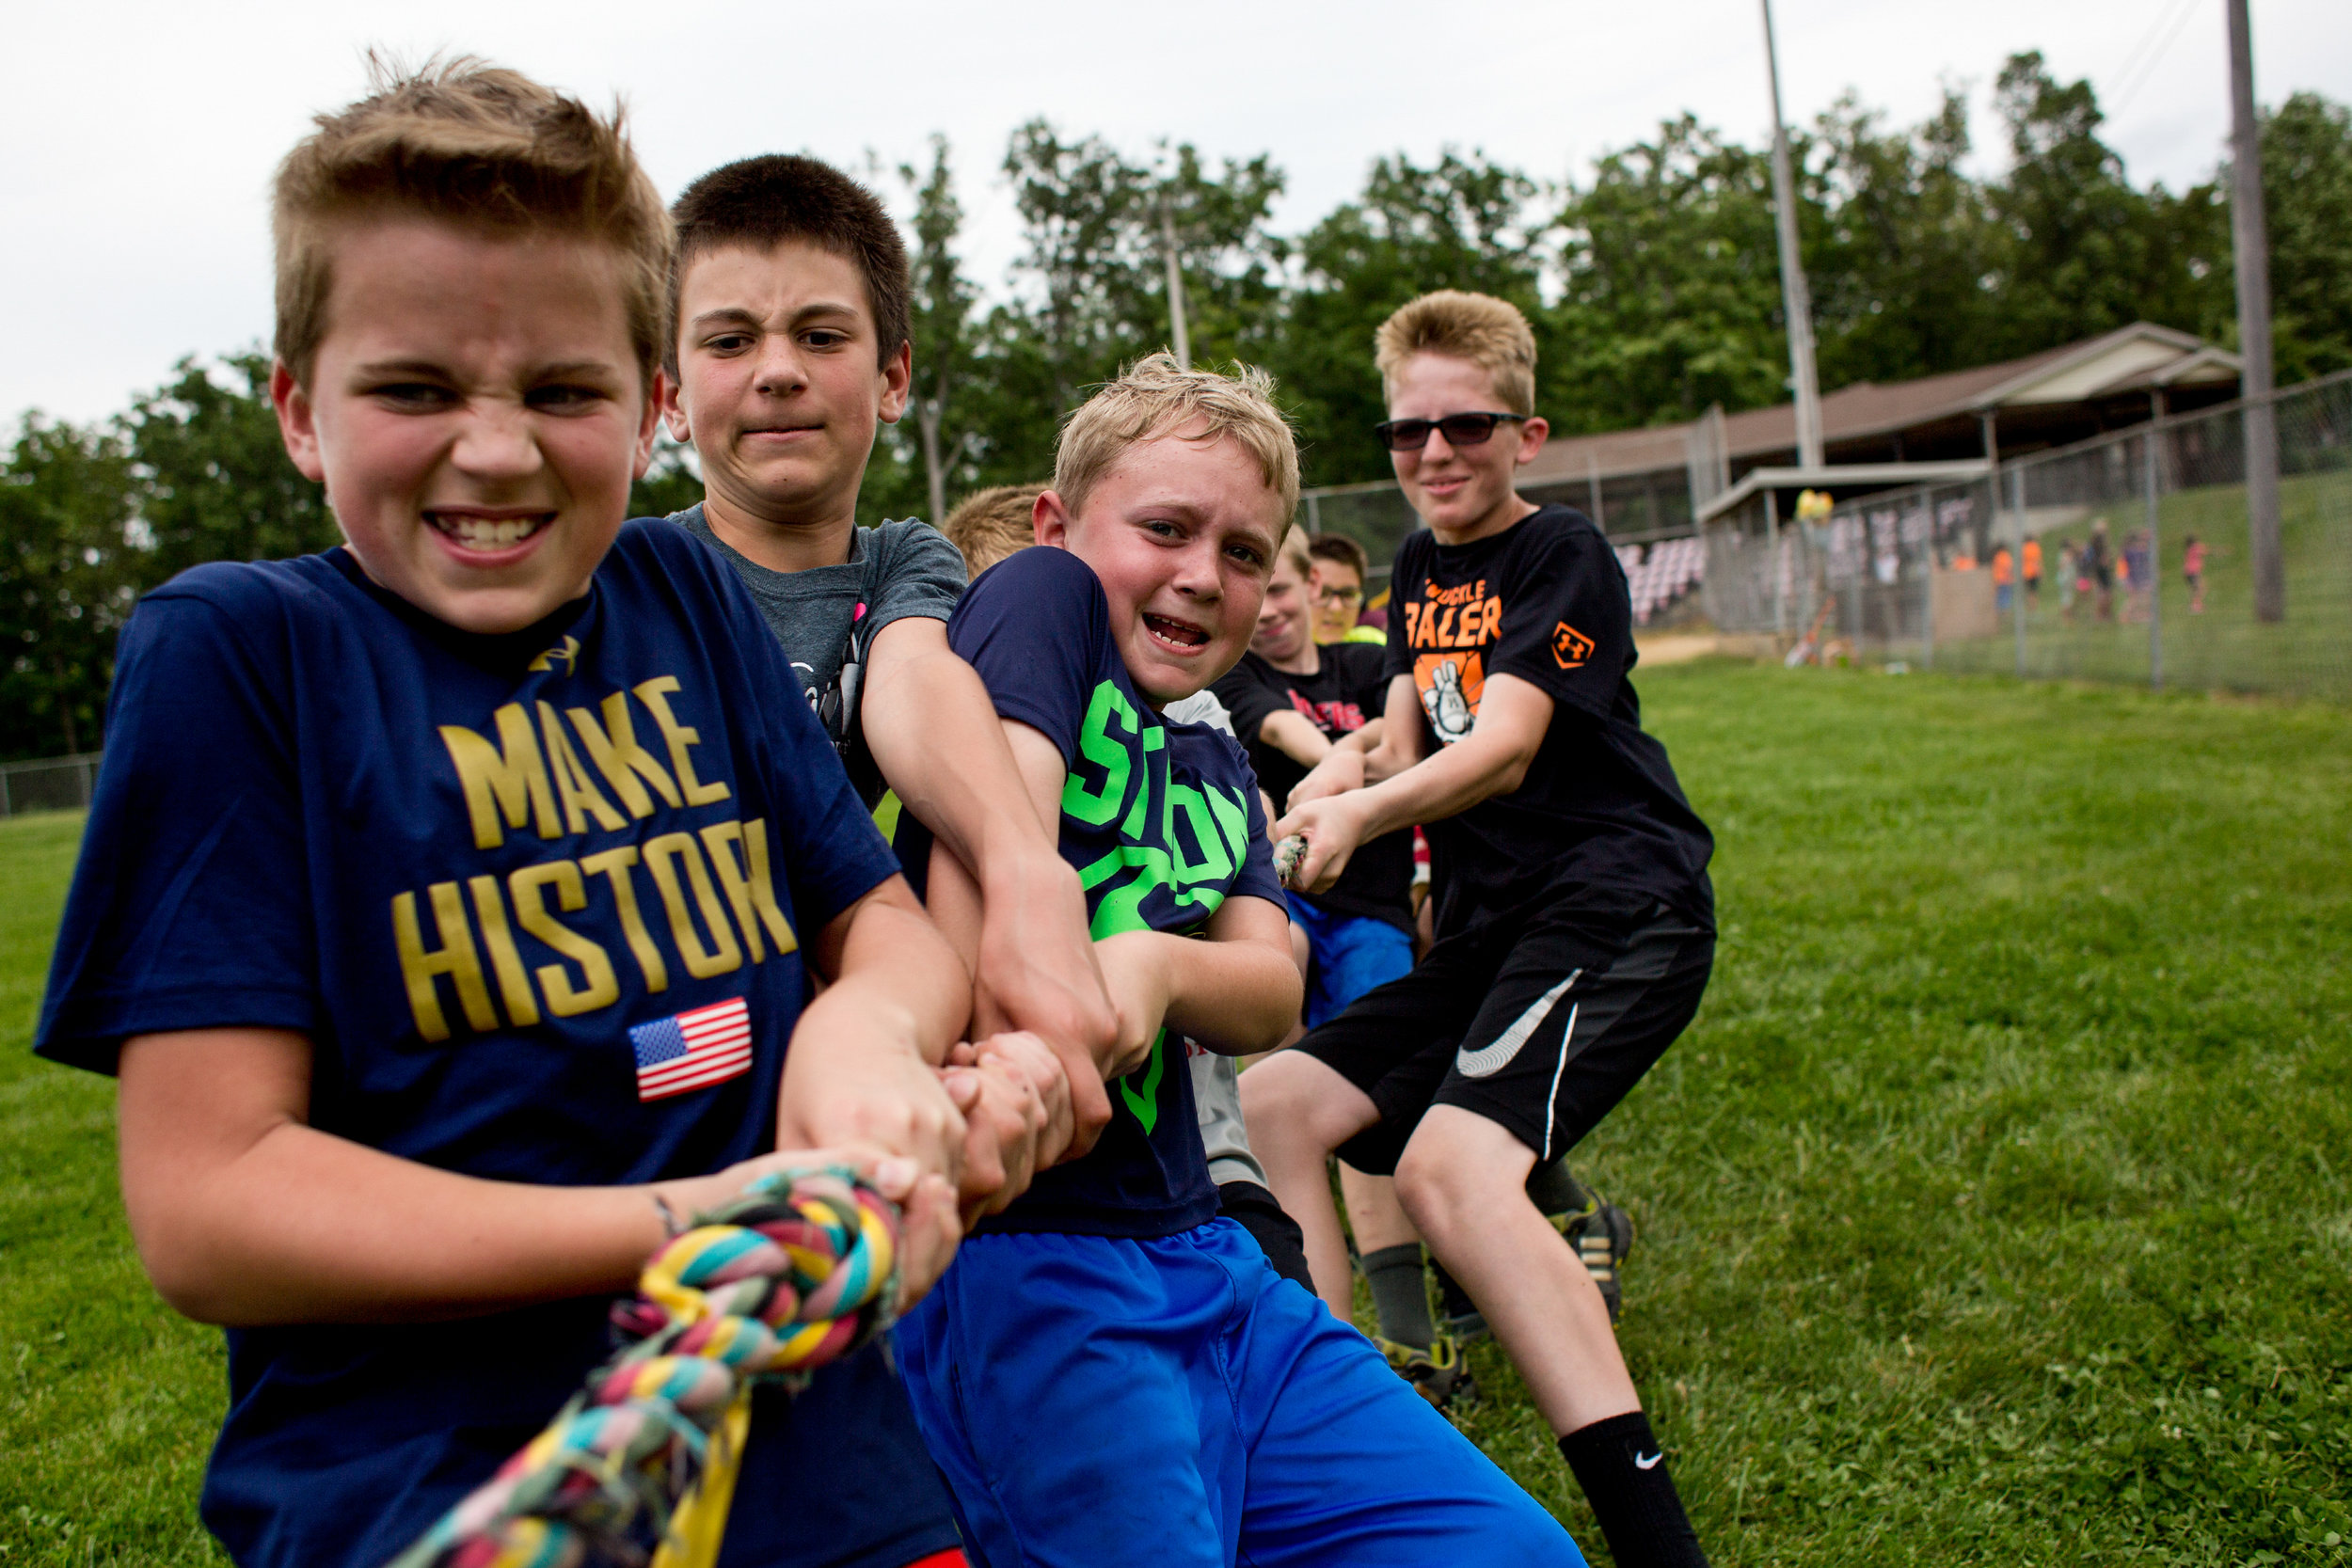 Holland Elementary School fifth-grade boys Jared Voegerl, from left, Kamren Neukam, Beau Schmitt and Keaton Allen competed in tug of war against the fifth-grade girls during the school's field day Wednesday at Holland Park. Different grades organized into teams to compete in various activities from tug of war to three-legged races.